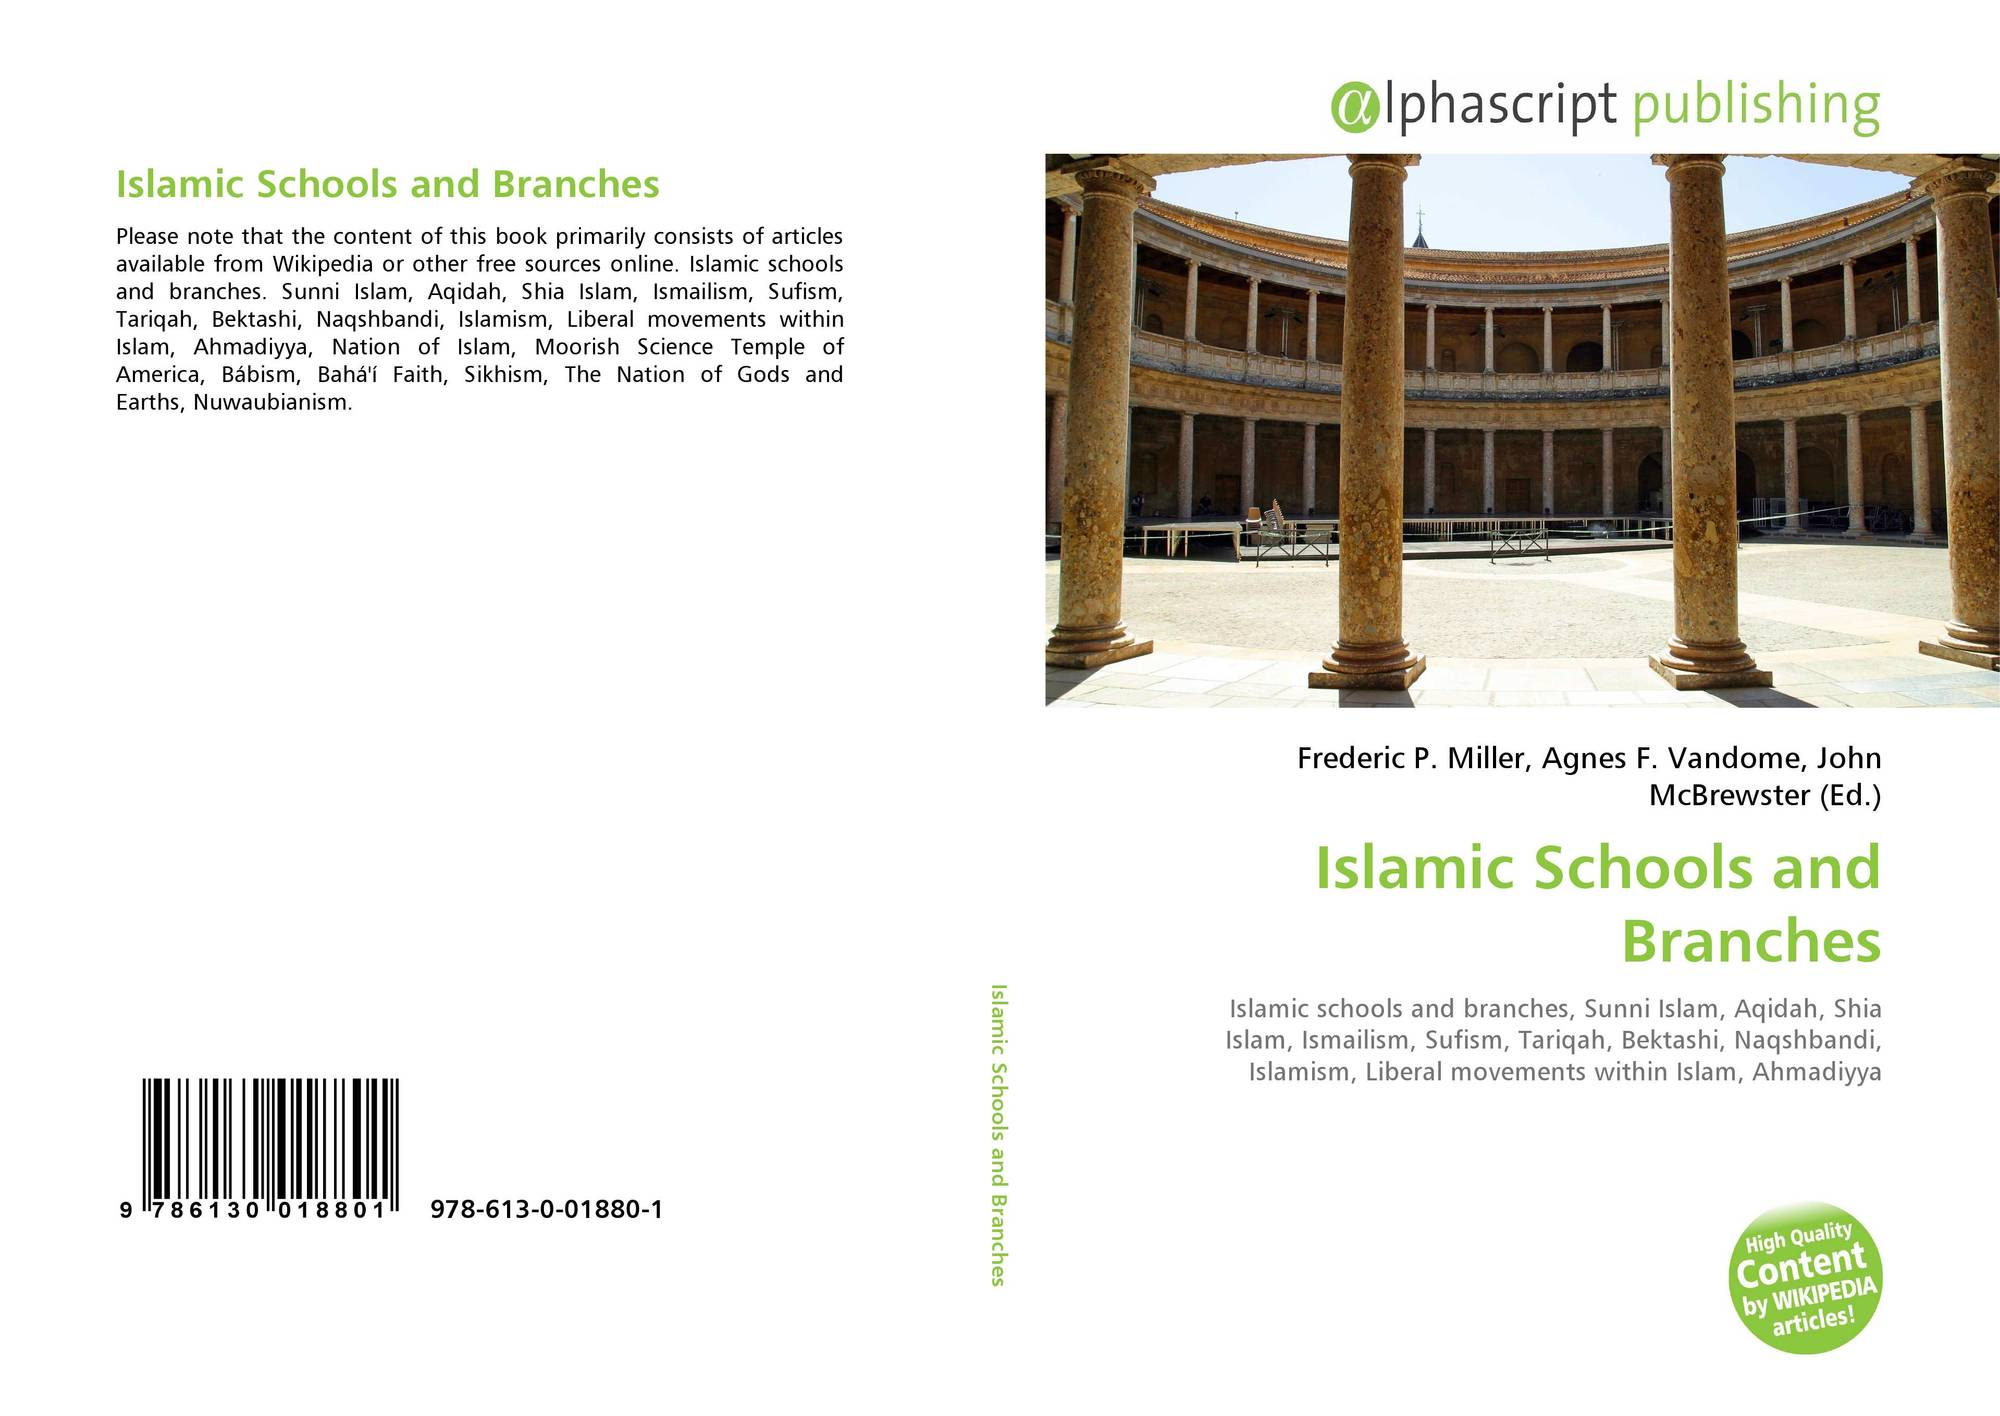 Islamic Schools and Branches, 978-613-0-01880-1, 6130018800